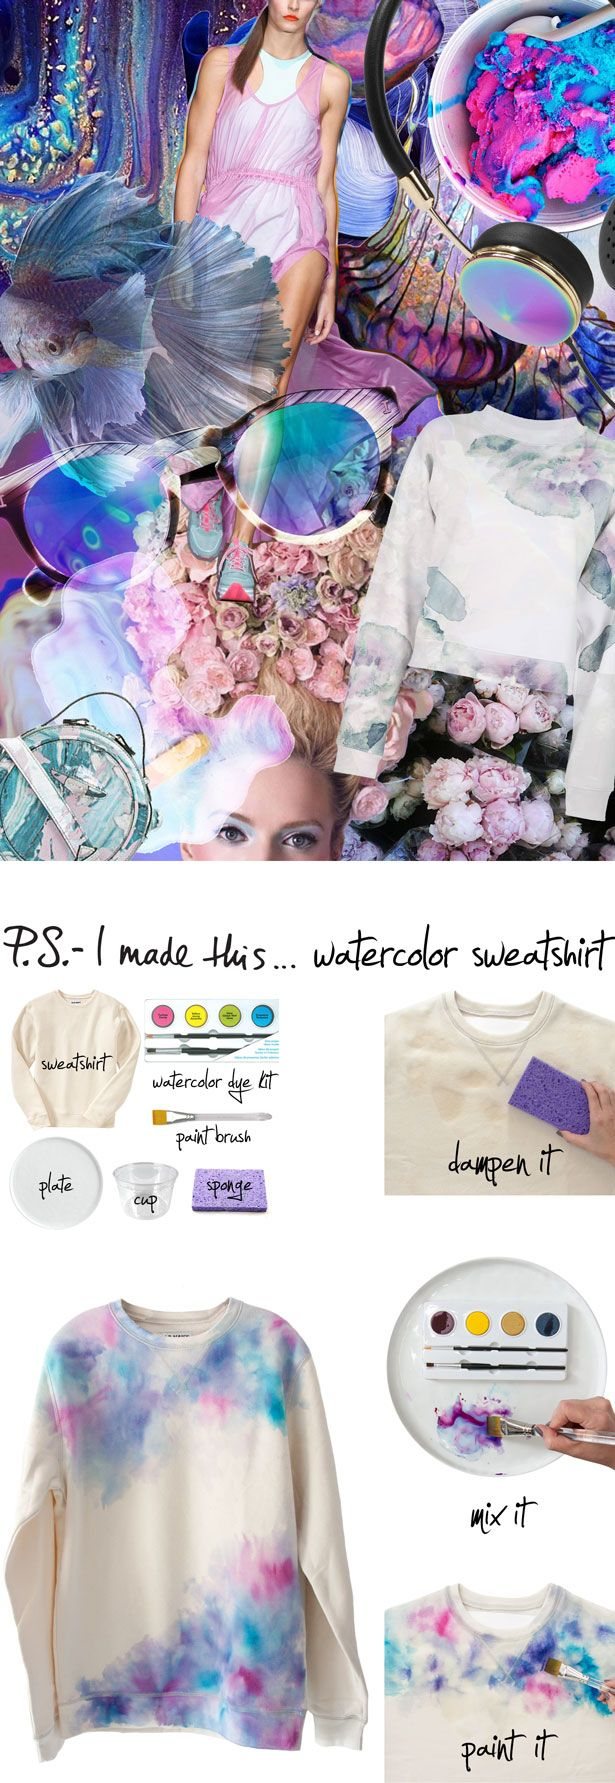 P.S.- I made this...Watercolor Sweatshirt #PSIMADETHIS #DIY | See more about Sweatshirts, Wearable Art and Paint Brushes. | See more about Sweatshirts, Watercolors and Wearable Art.